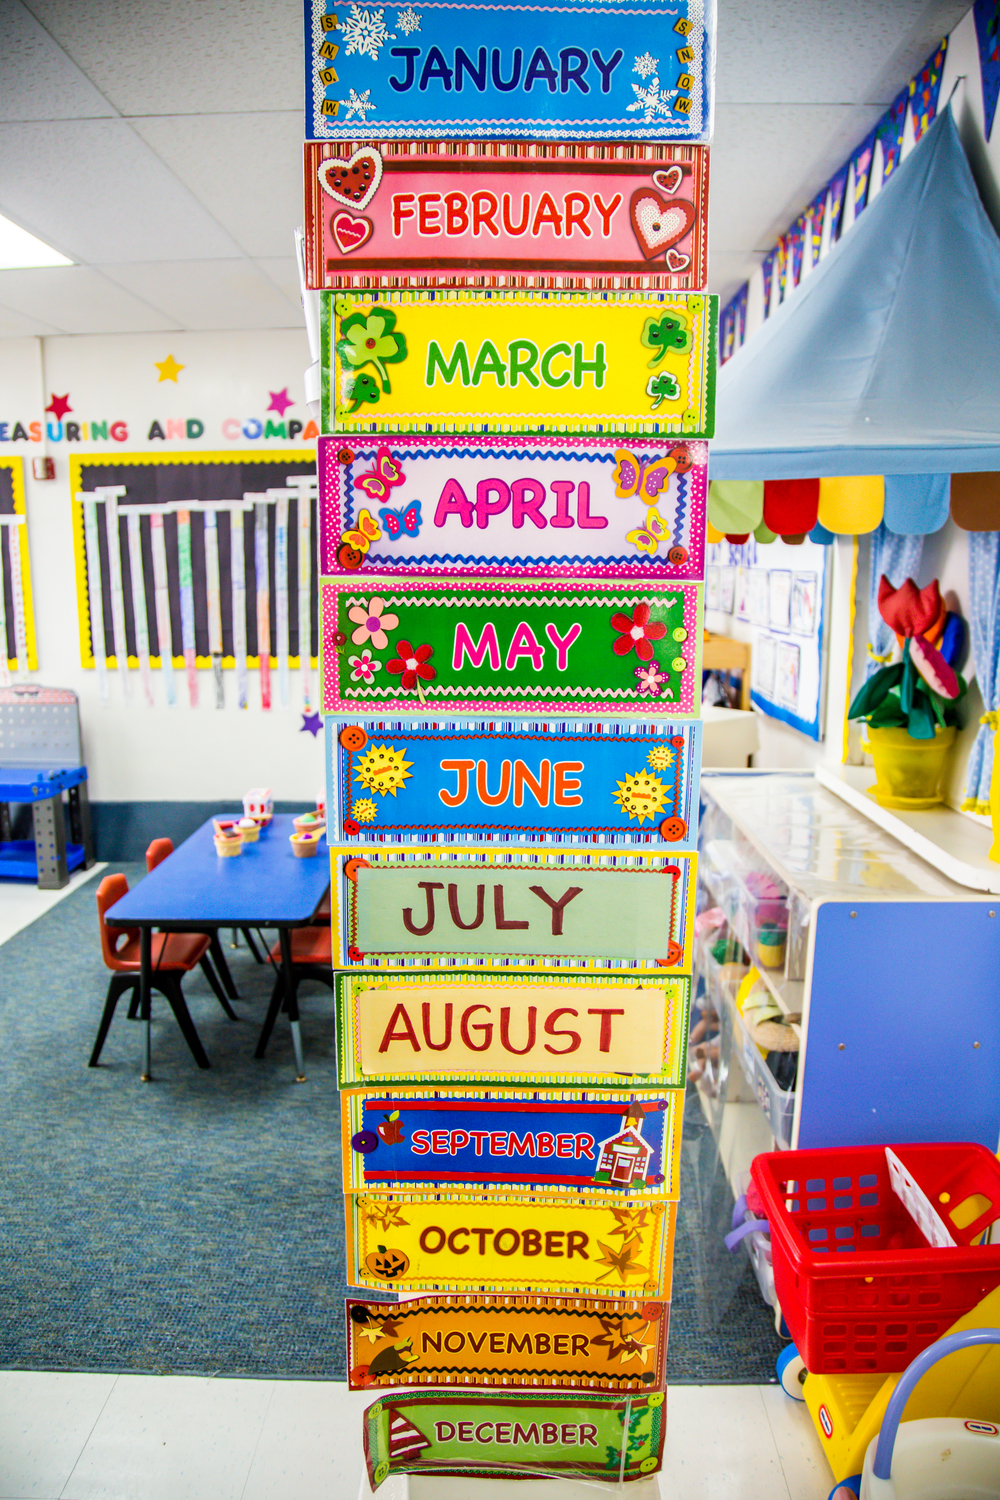 In the Daisy Room, children learn about months and days at calendar time in the morning.